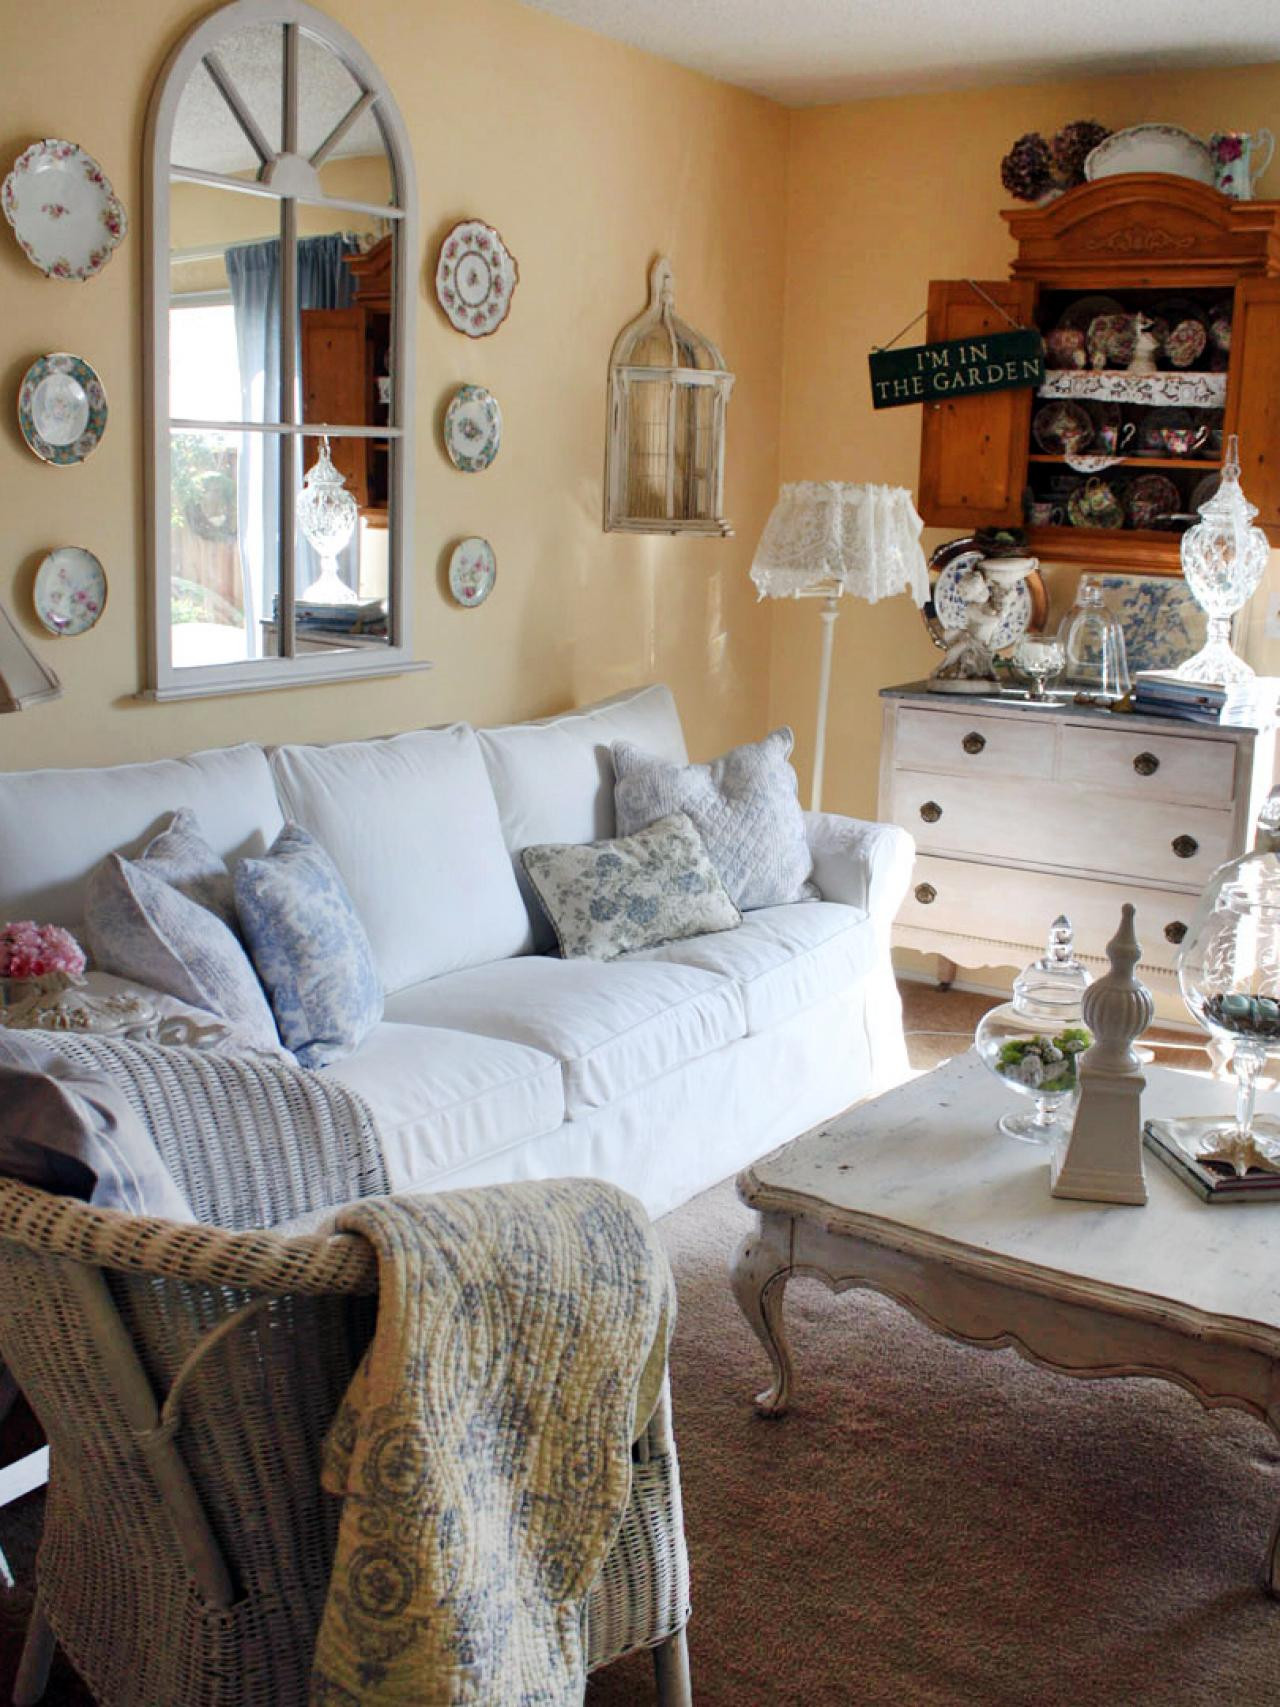 Best ideas about Shabby Chic Room . Save or Pin Shabby Chic Cottage Living Room Now.